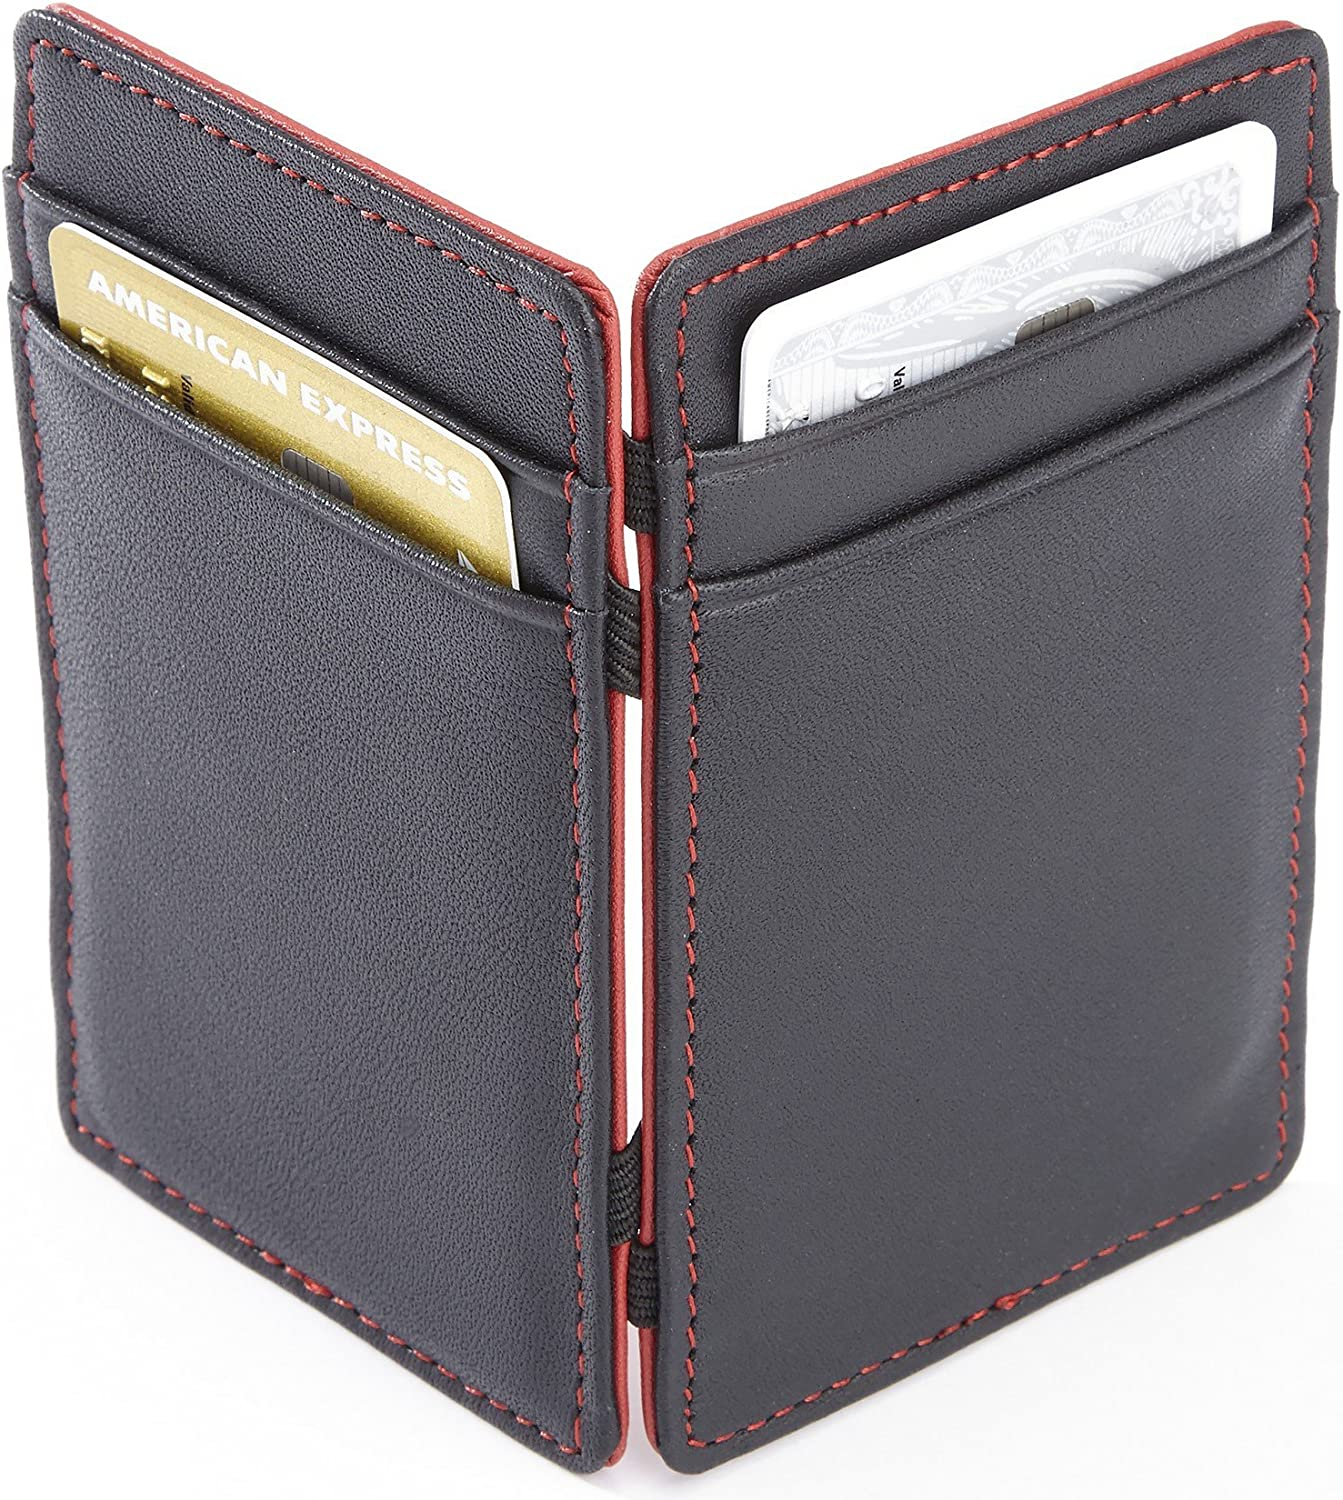 Purple EMPORIUM LEATHER 117-PURPLE-5 Royce Leather Magic Wallet in Leather DBA Royce Leather